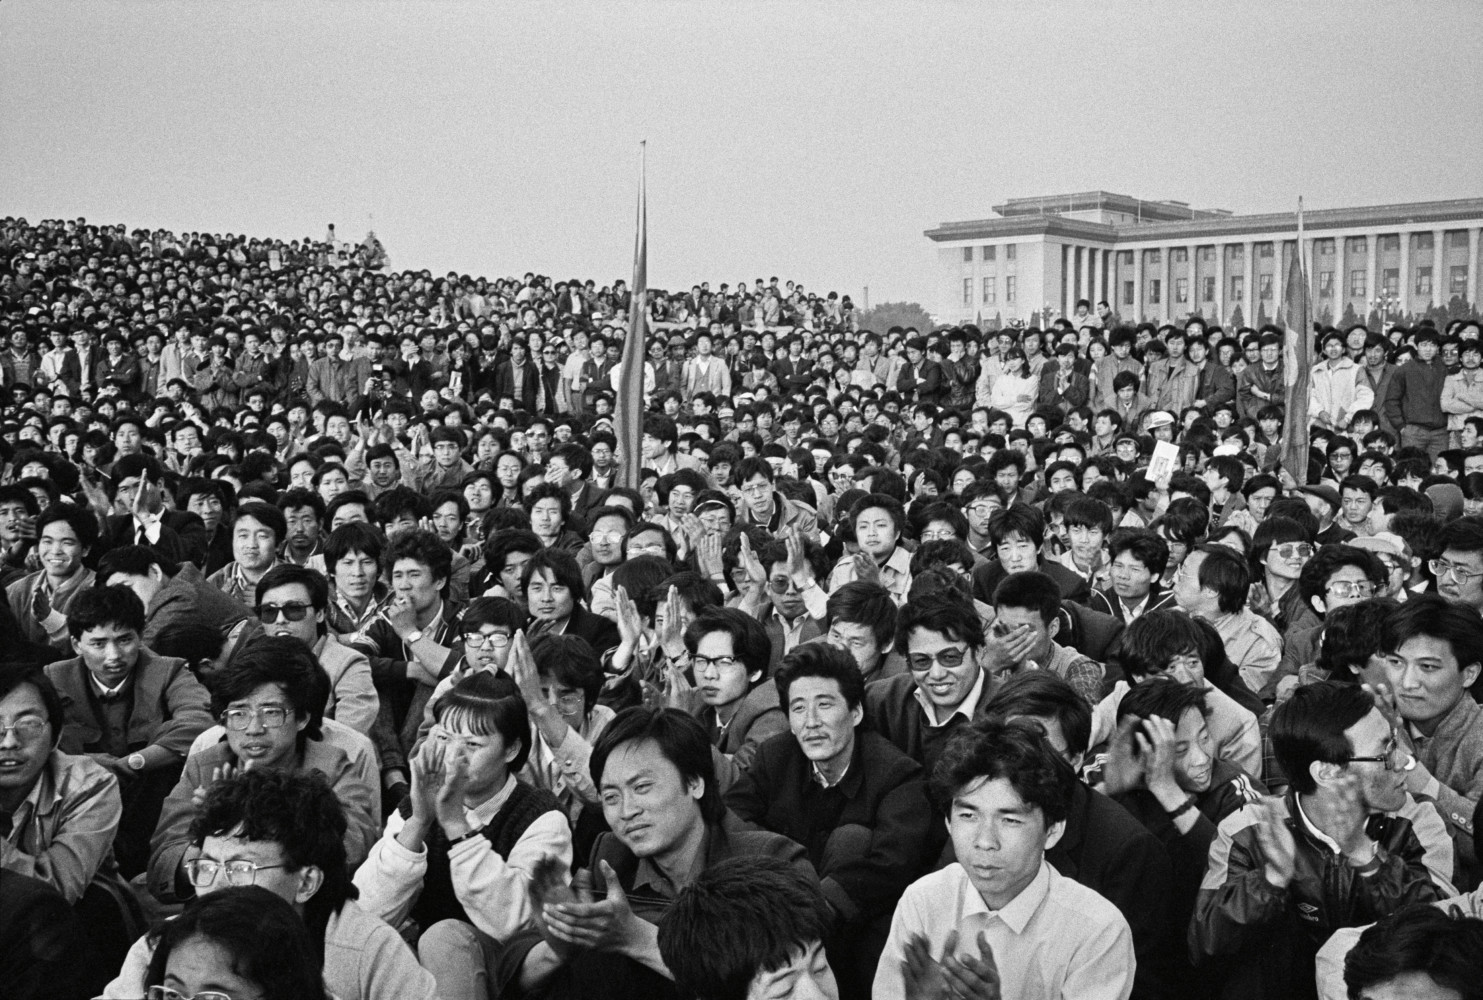 Tiananmen Square, 30 Years On: Patrick Zachmann reflects on the hope and freedom that preceded the violence • Magnum Photos